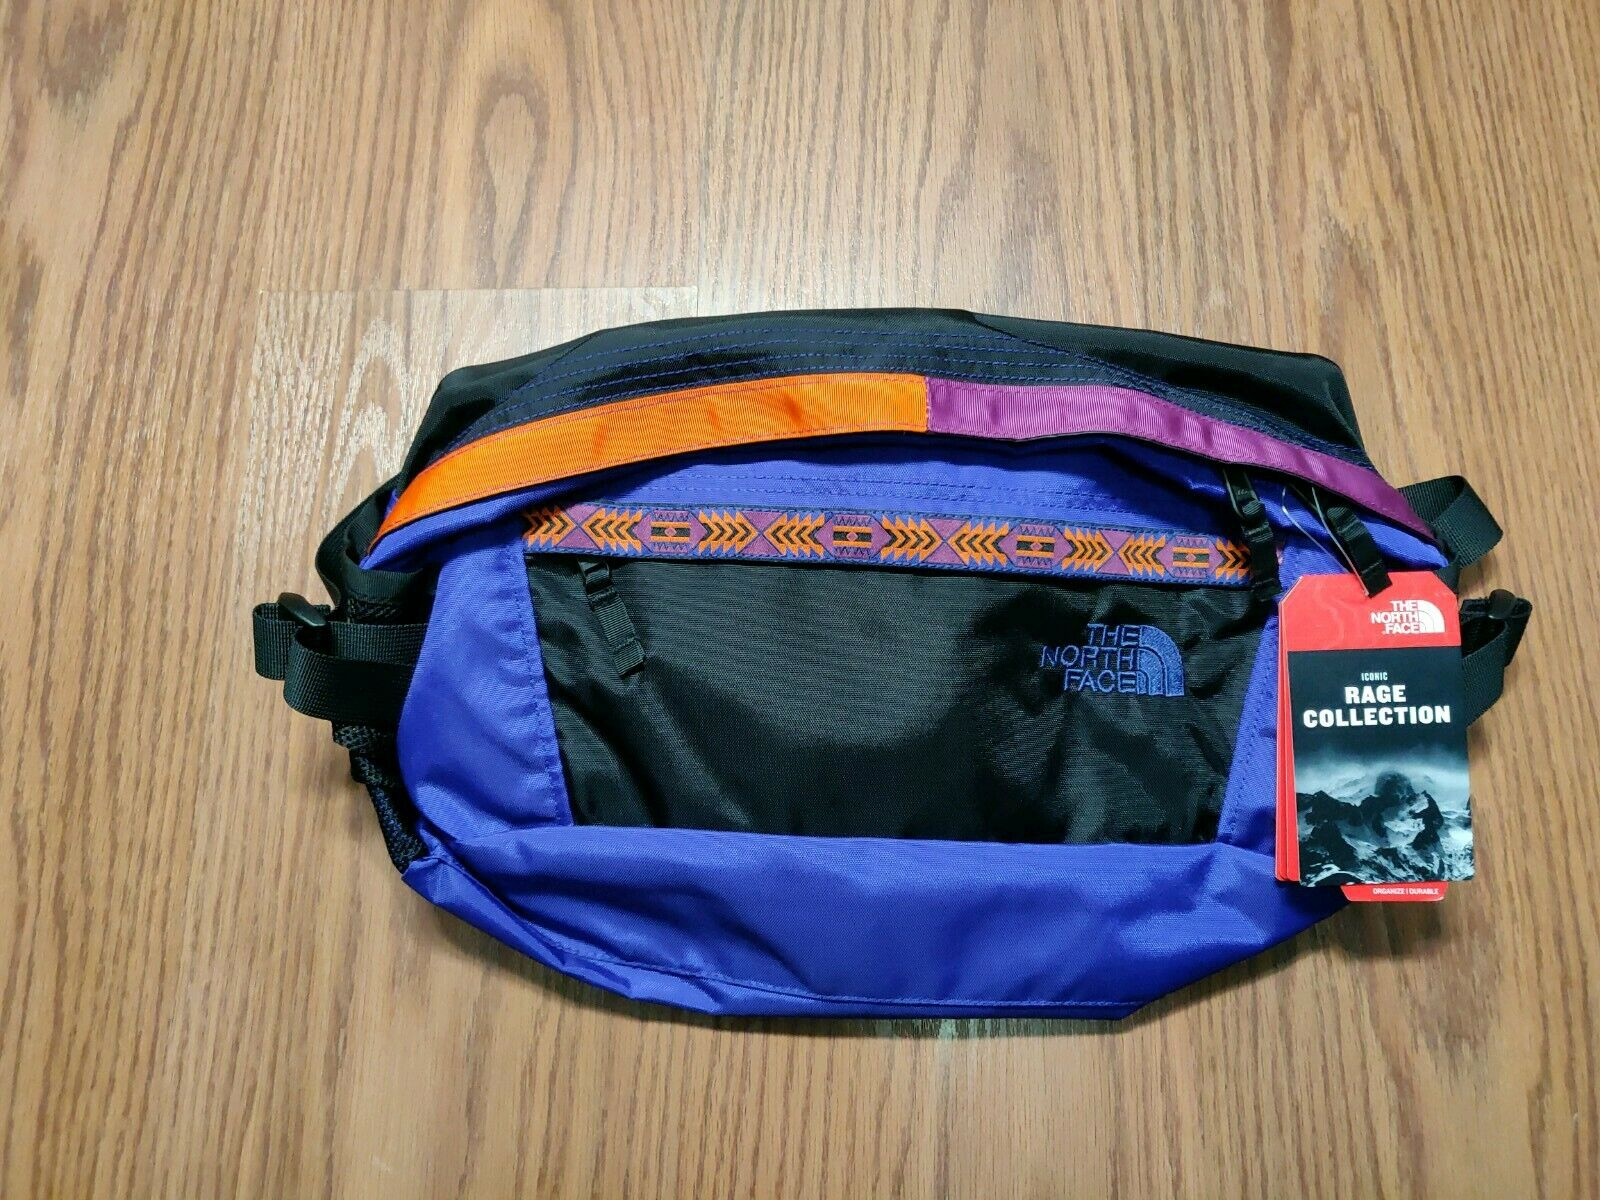 NWT The North Face 92 rage em fanny pack Größe large Aztec Blau rage